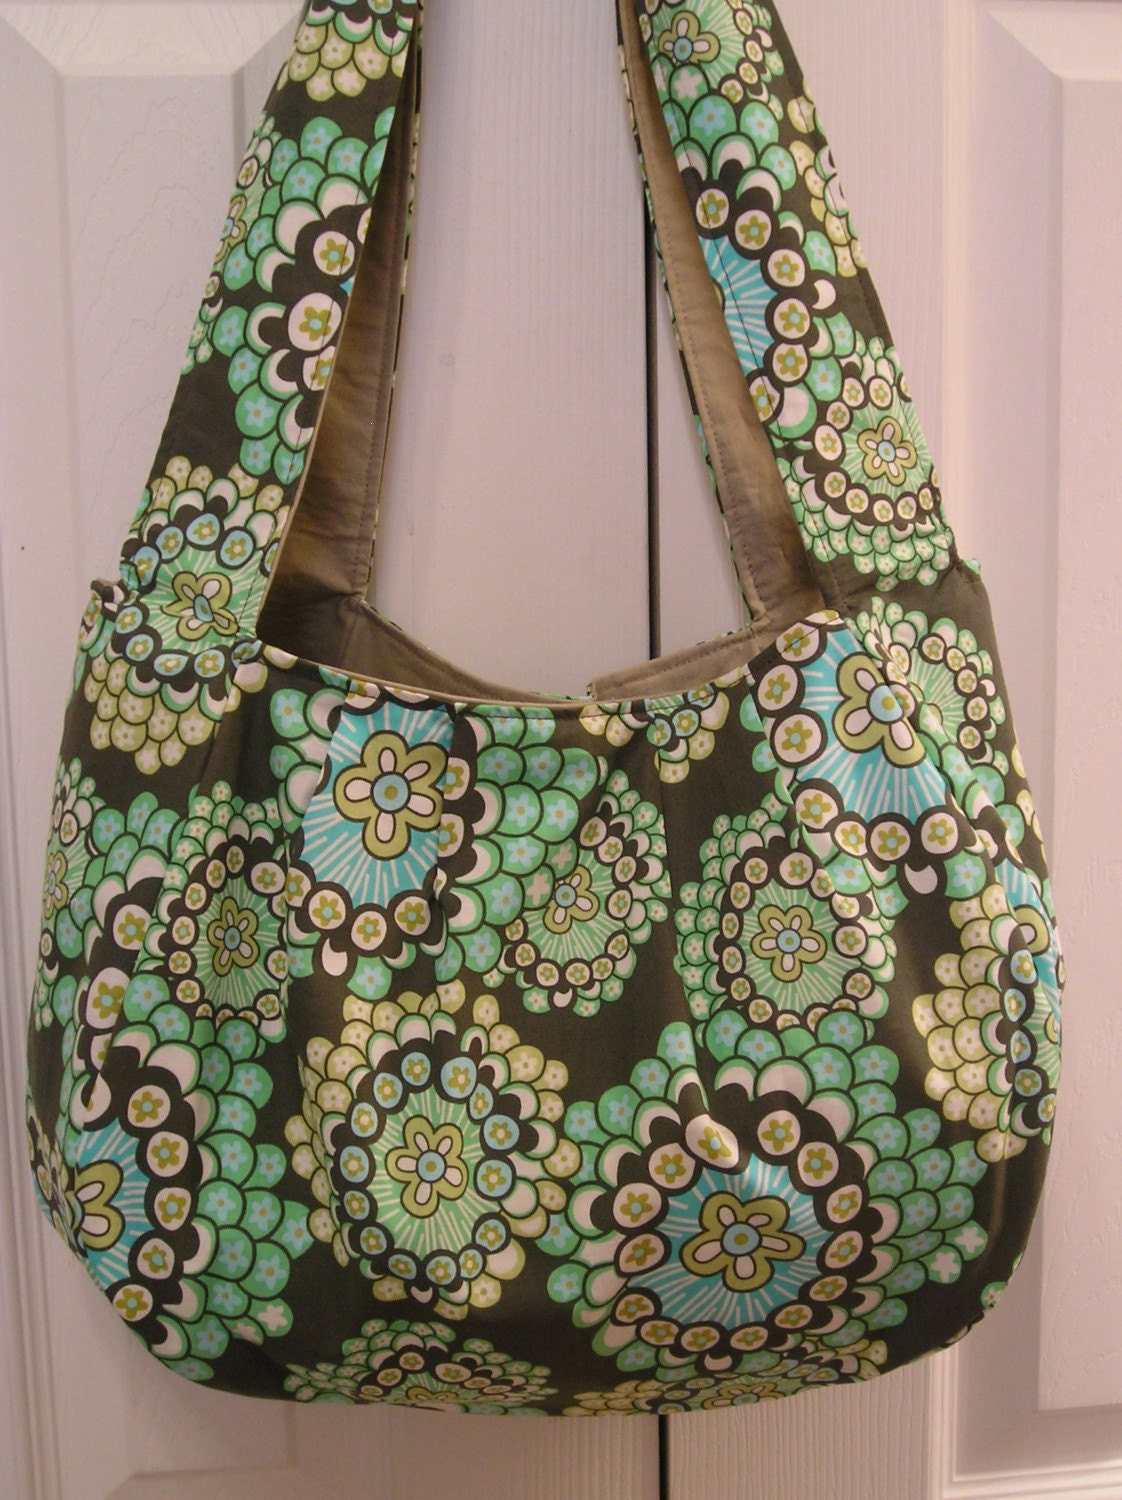 Pleated Hobo Bag lg - Dandelion Fields (4 pockets) by BagsByColette on Etsy